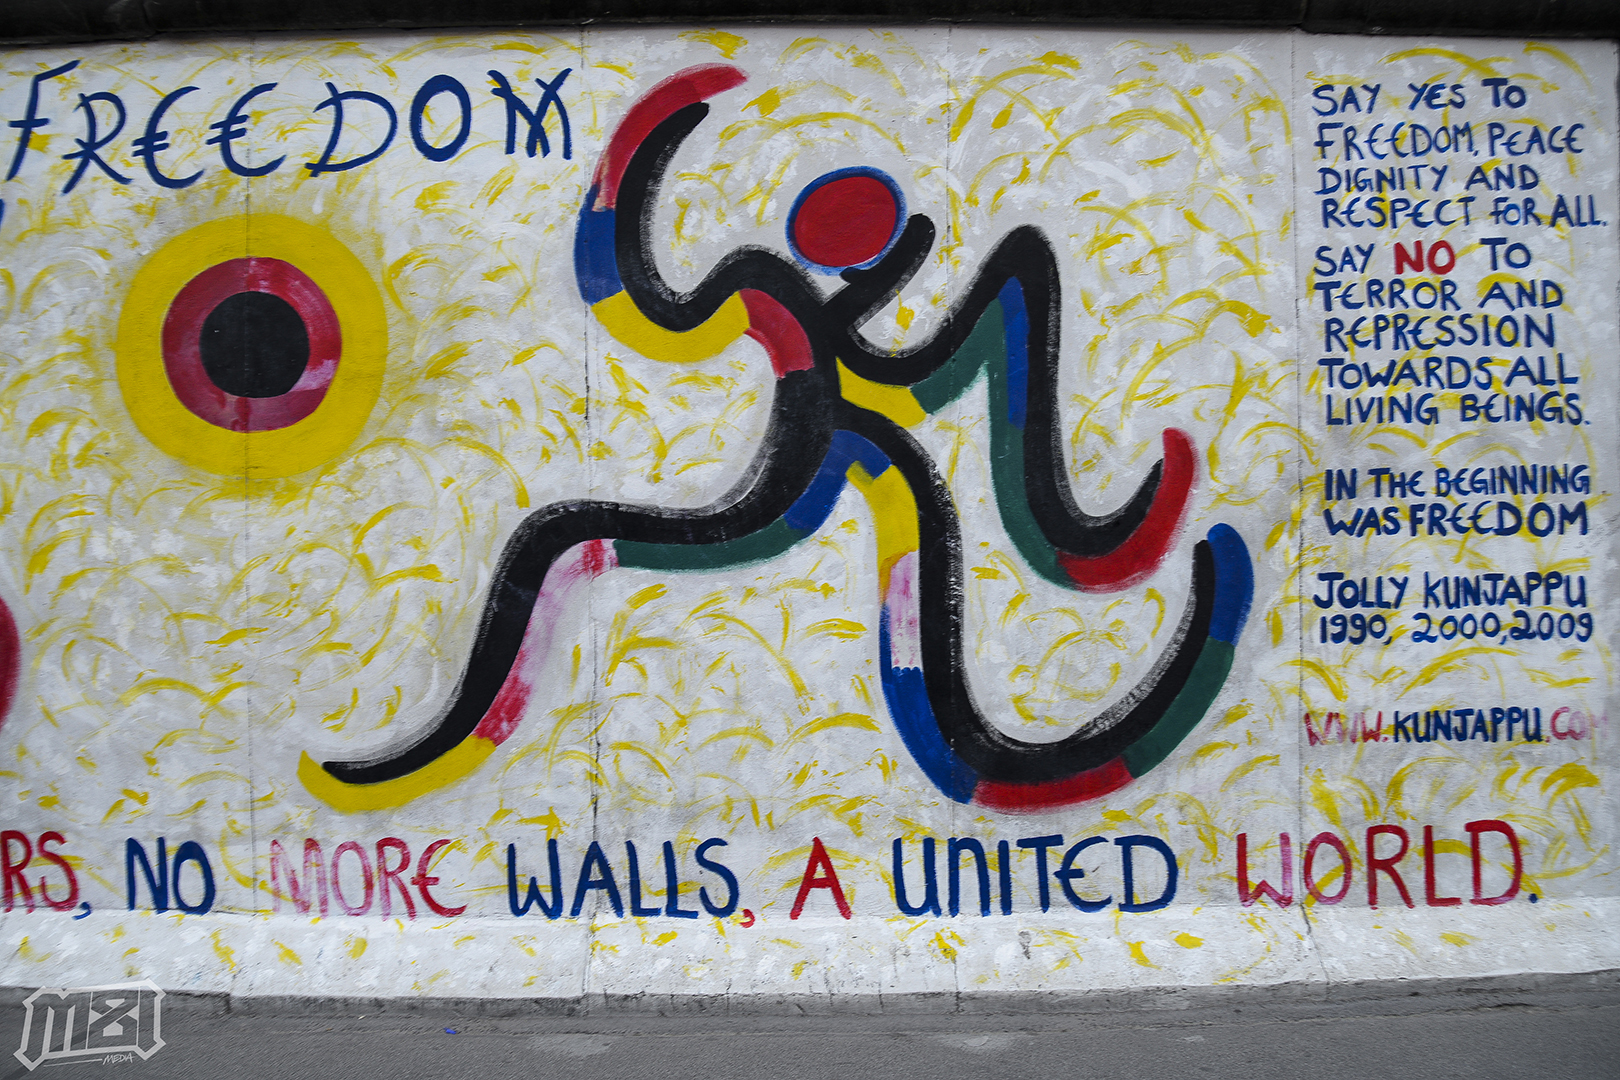 No More Walls, United World